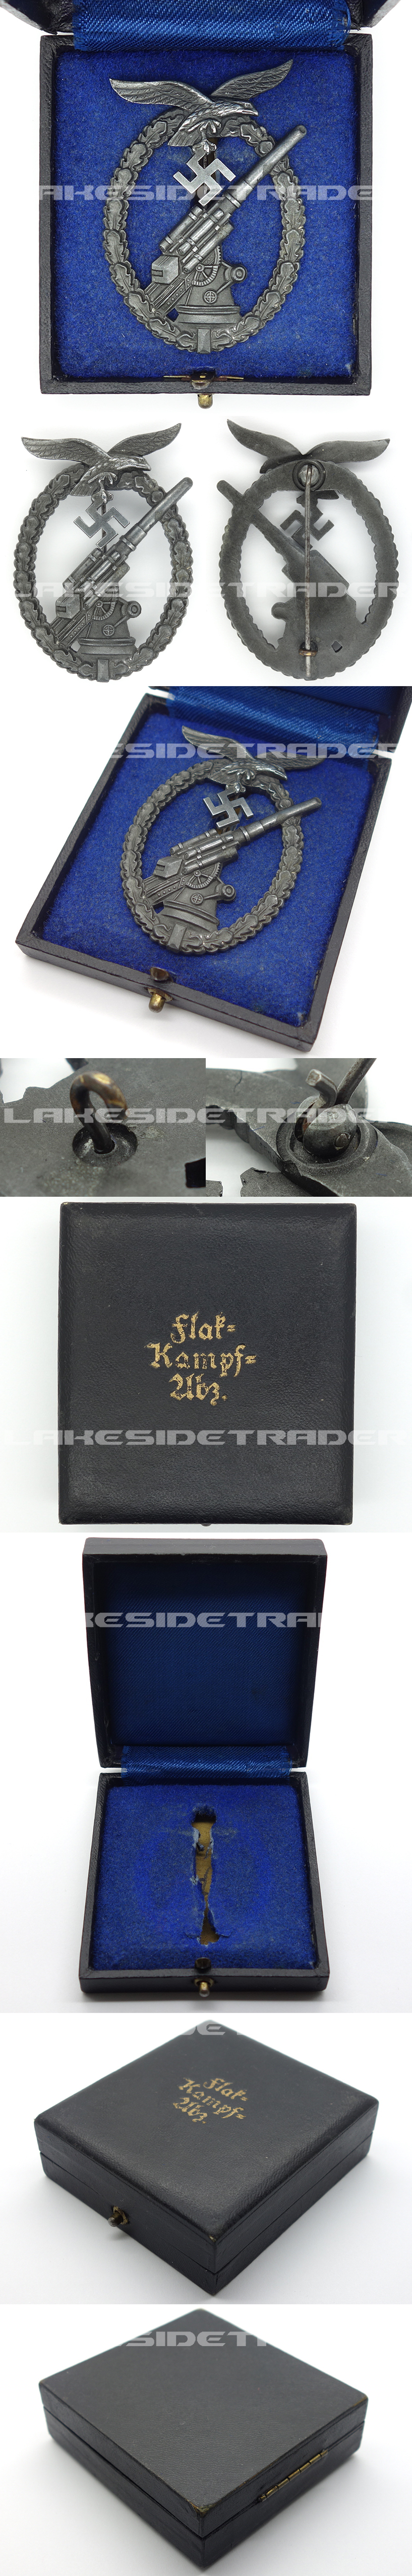 """Cased Luftwaffe """"Ball Hinge"""" Flak Badge by A.S."""